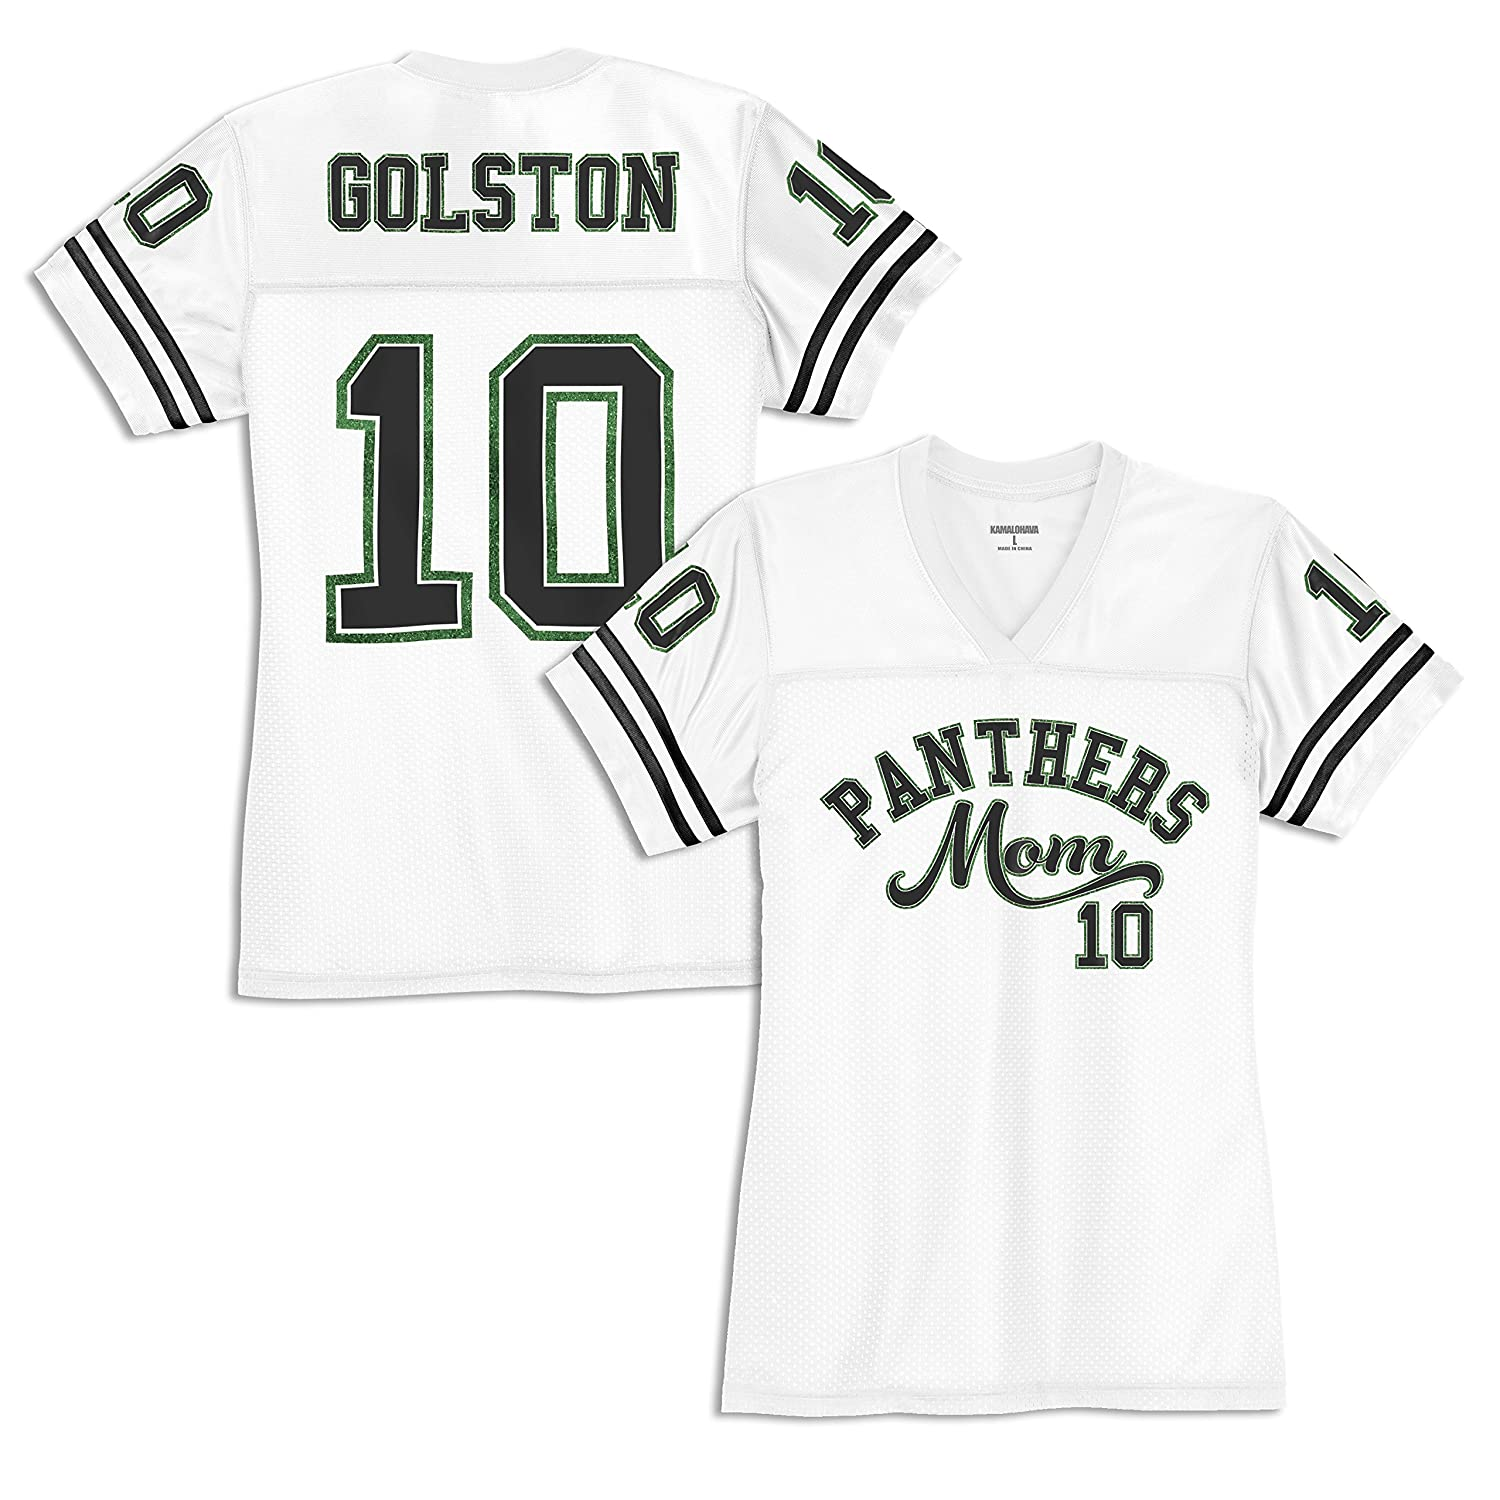 Choose your jersey size and color then click